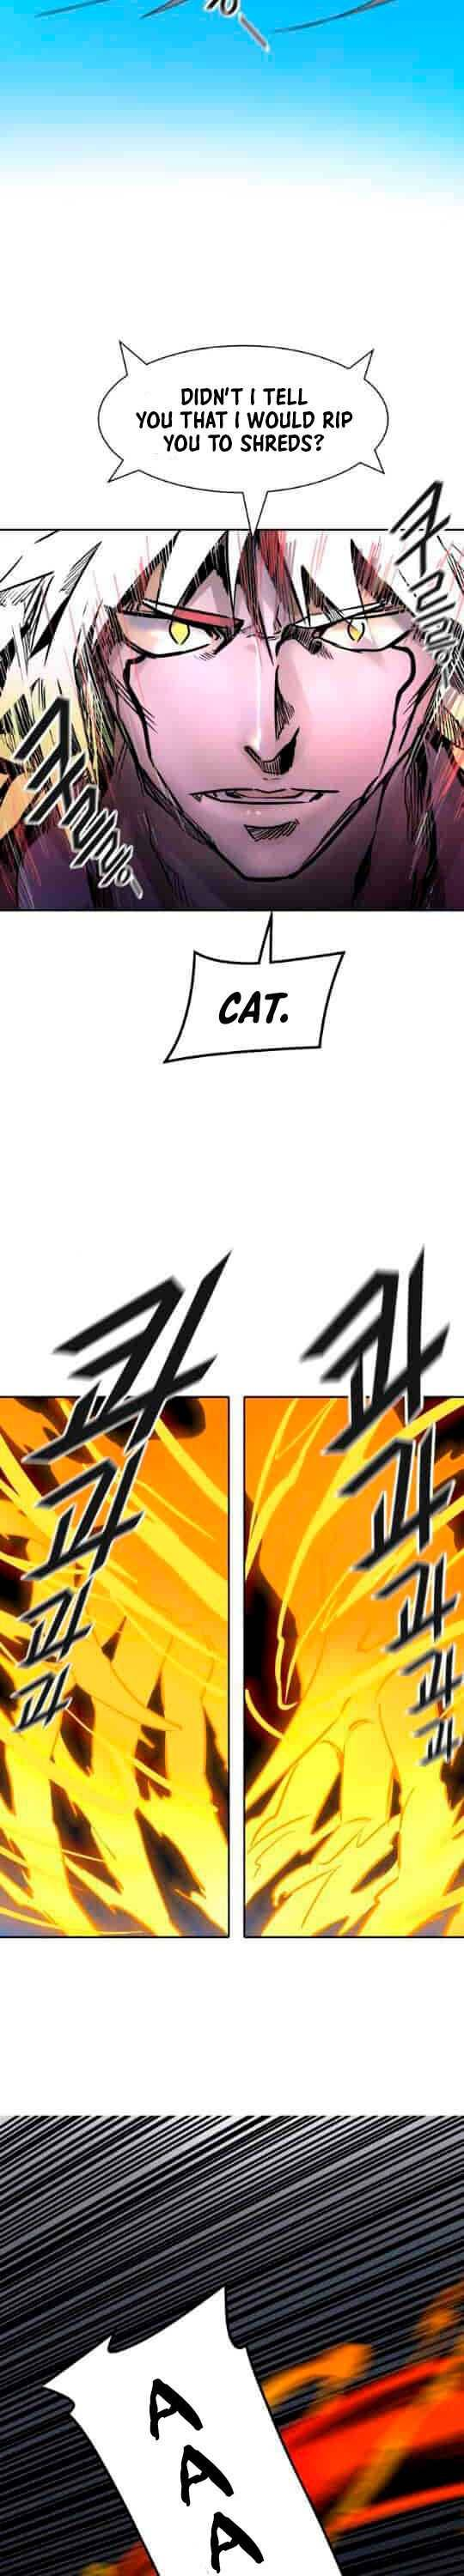 Tower Of God, Chapter 492 image 019